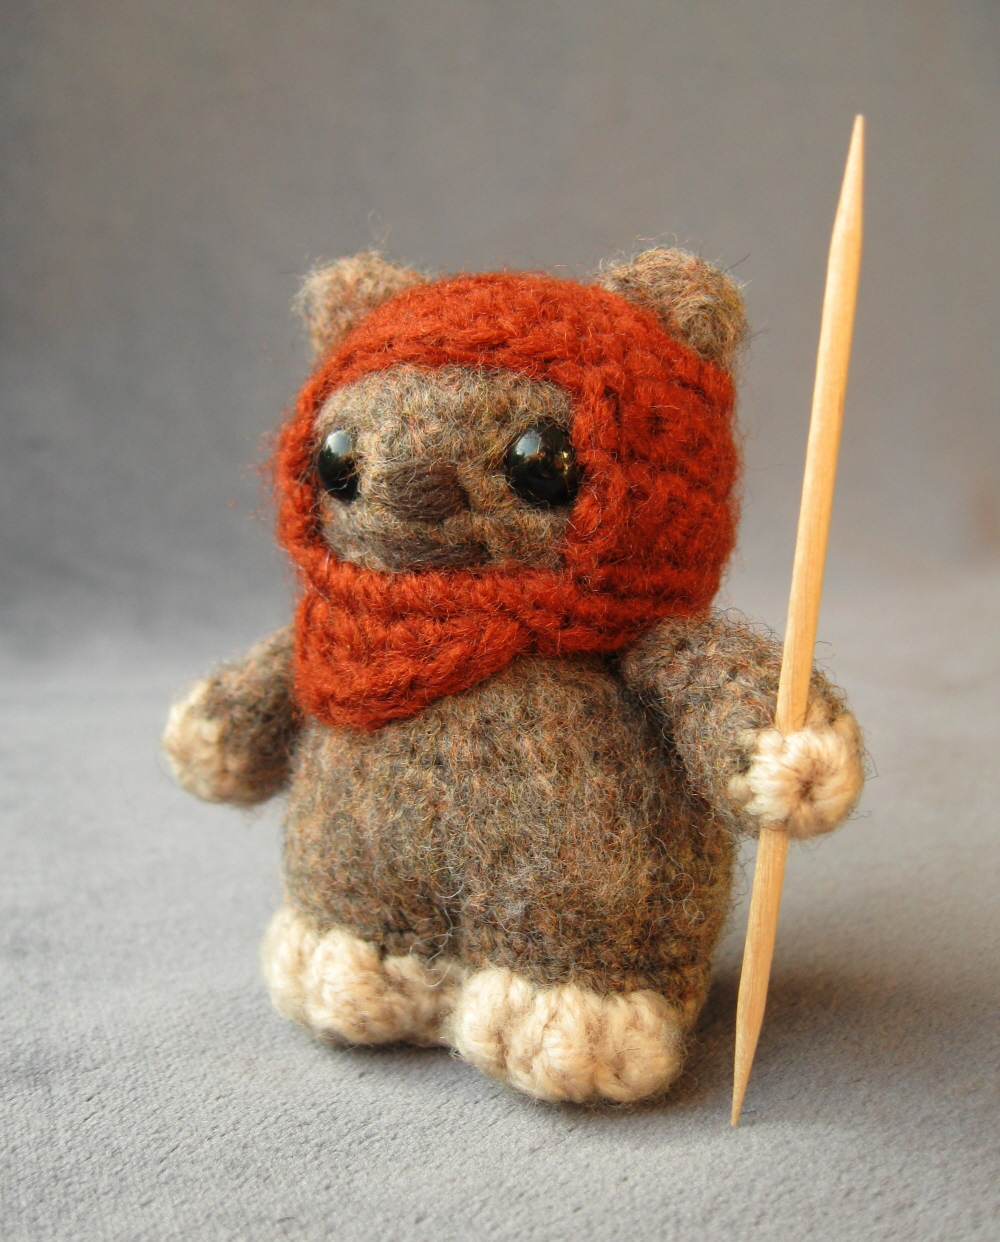 Amigurumi Ewok by LucyRavenscar / All Rights Reserved